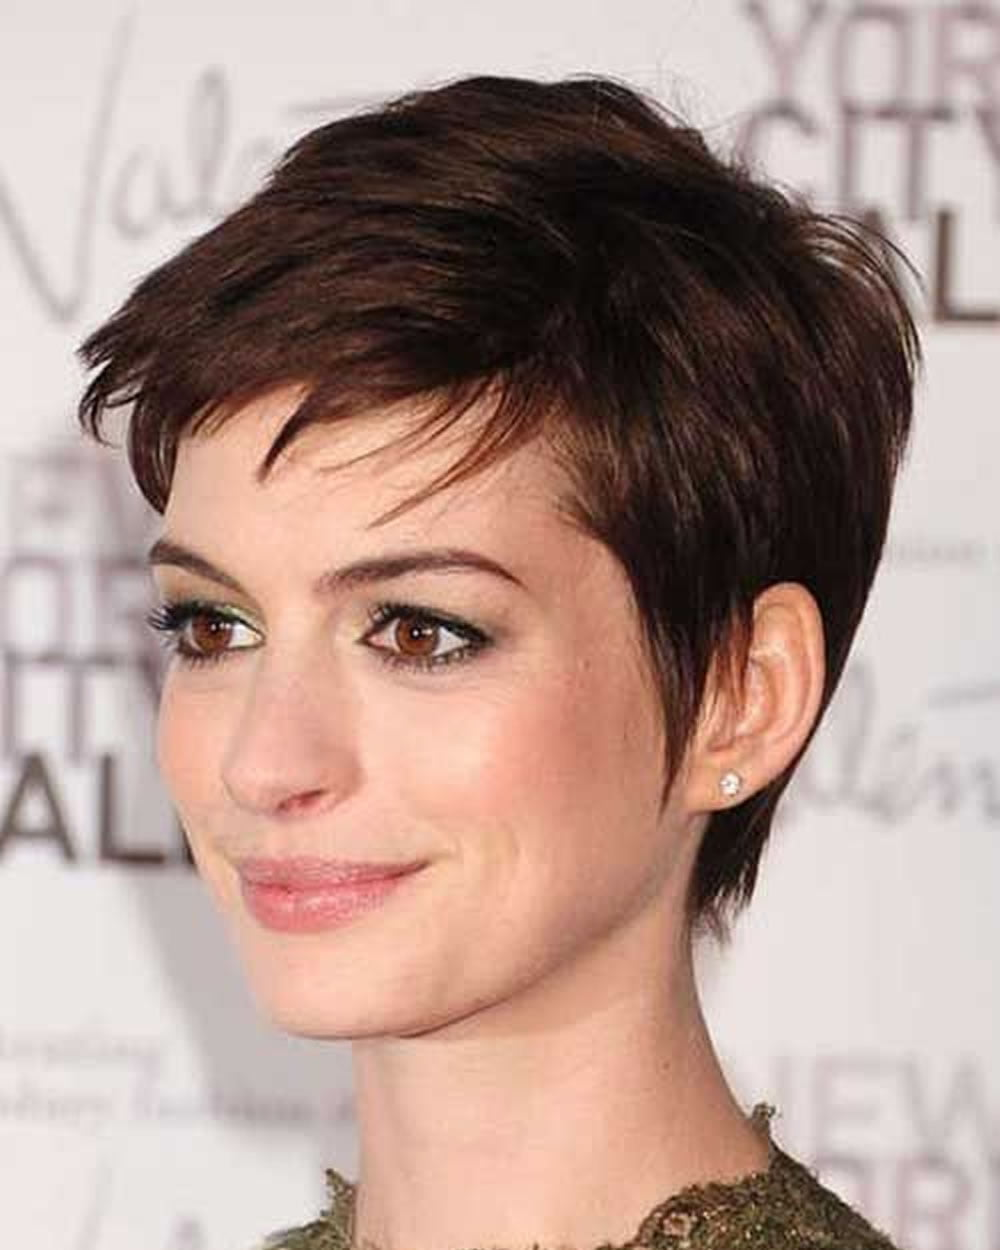 Sexiest Spring Haircuts | InStyle.com